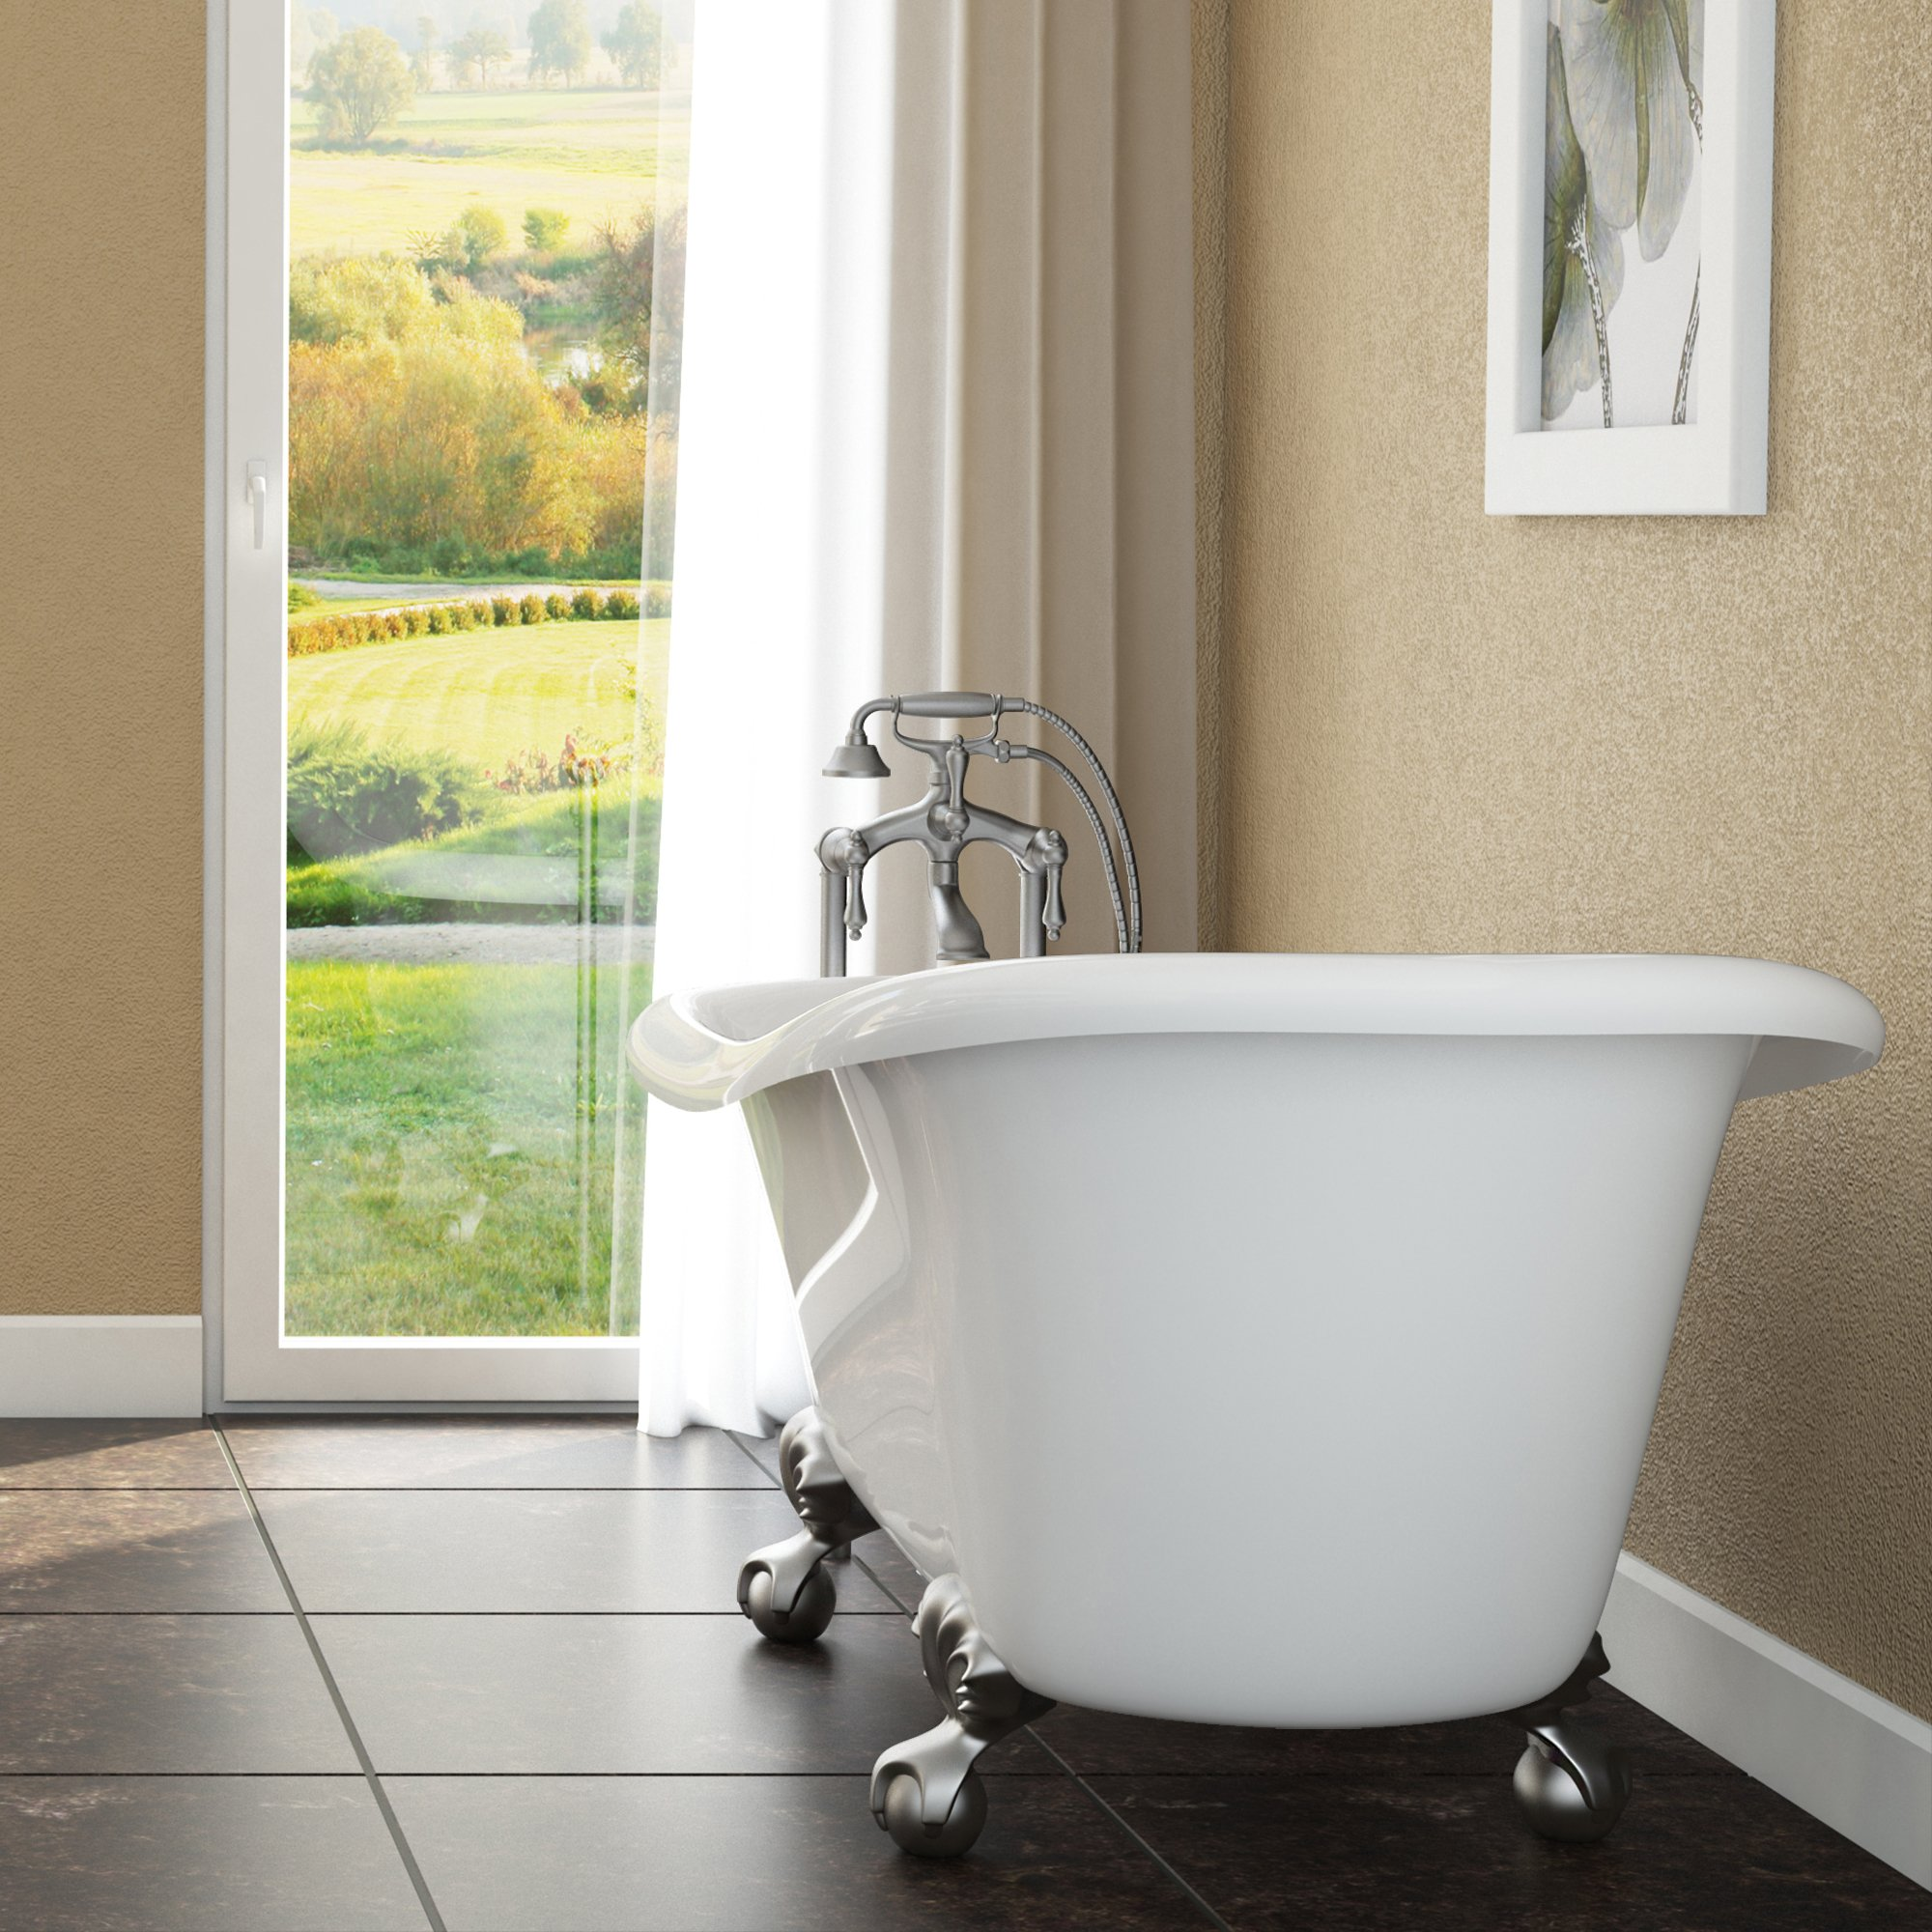 Luxury 60 inch Clawfoot Tub with Vintage Slipper Tub Design in White, includes Brushed Nickel Ball and Claw Feet and Drain, from The Brookdale Collection by Pelham & White